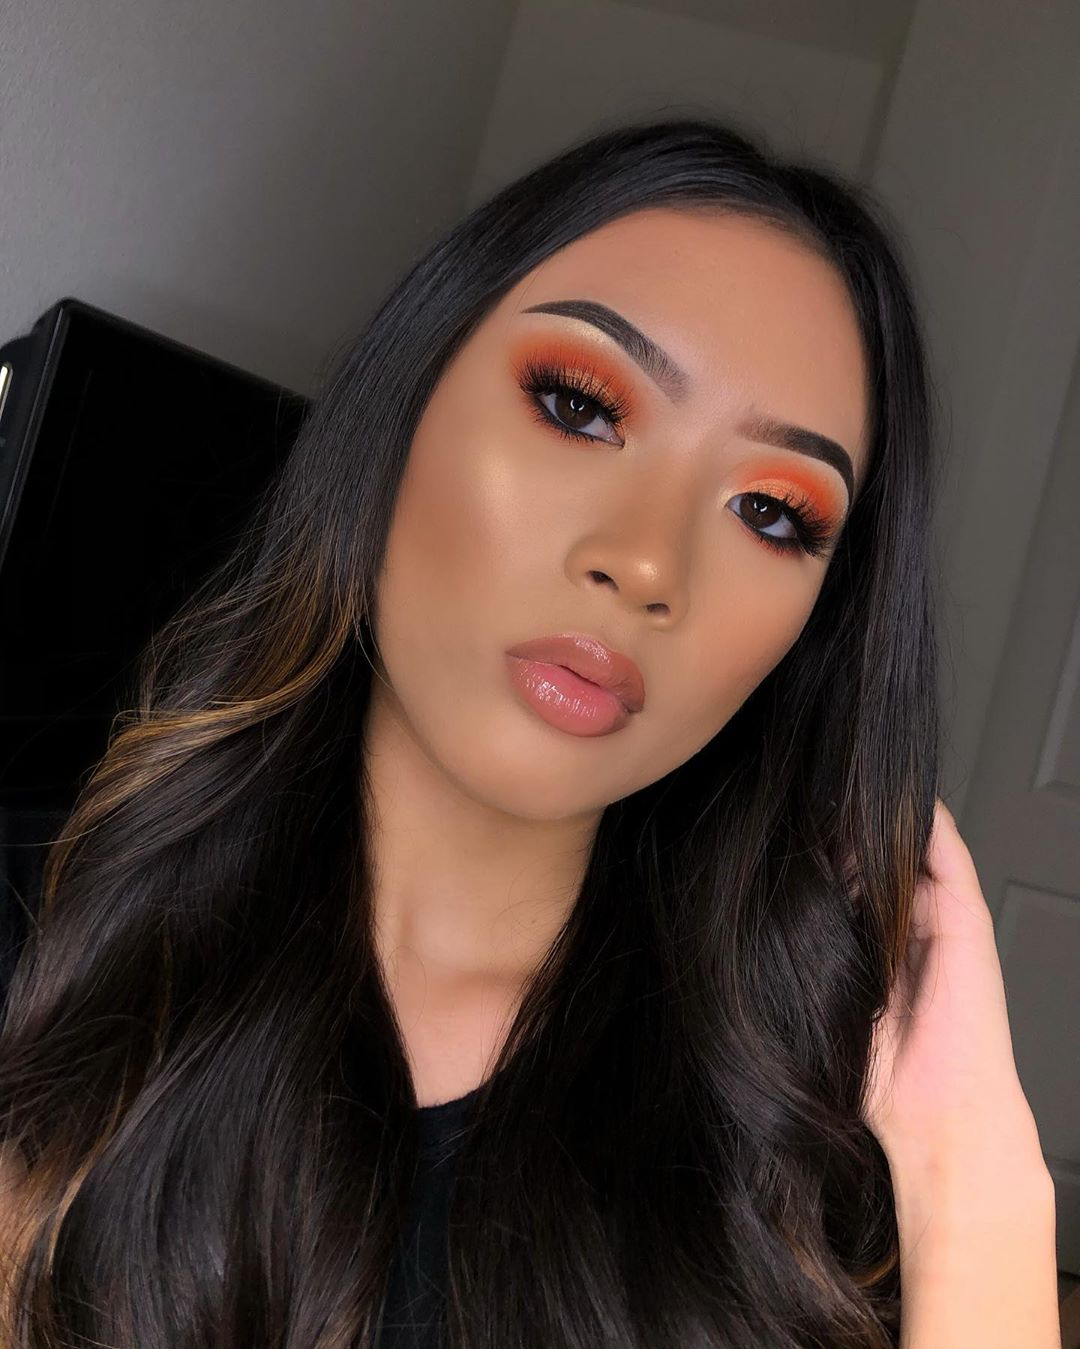 🧡 Im Obsessed With All The Products I U Colourpop - Makeup Ideas